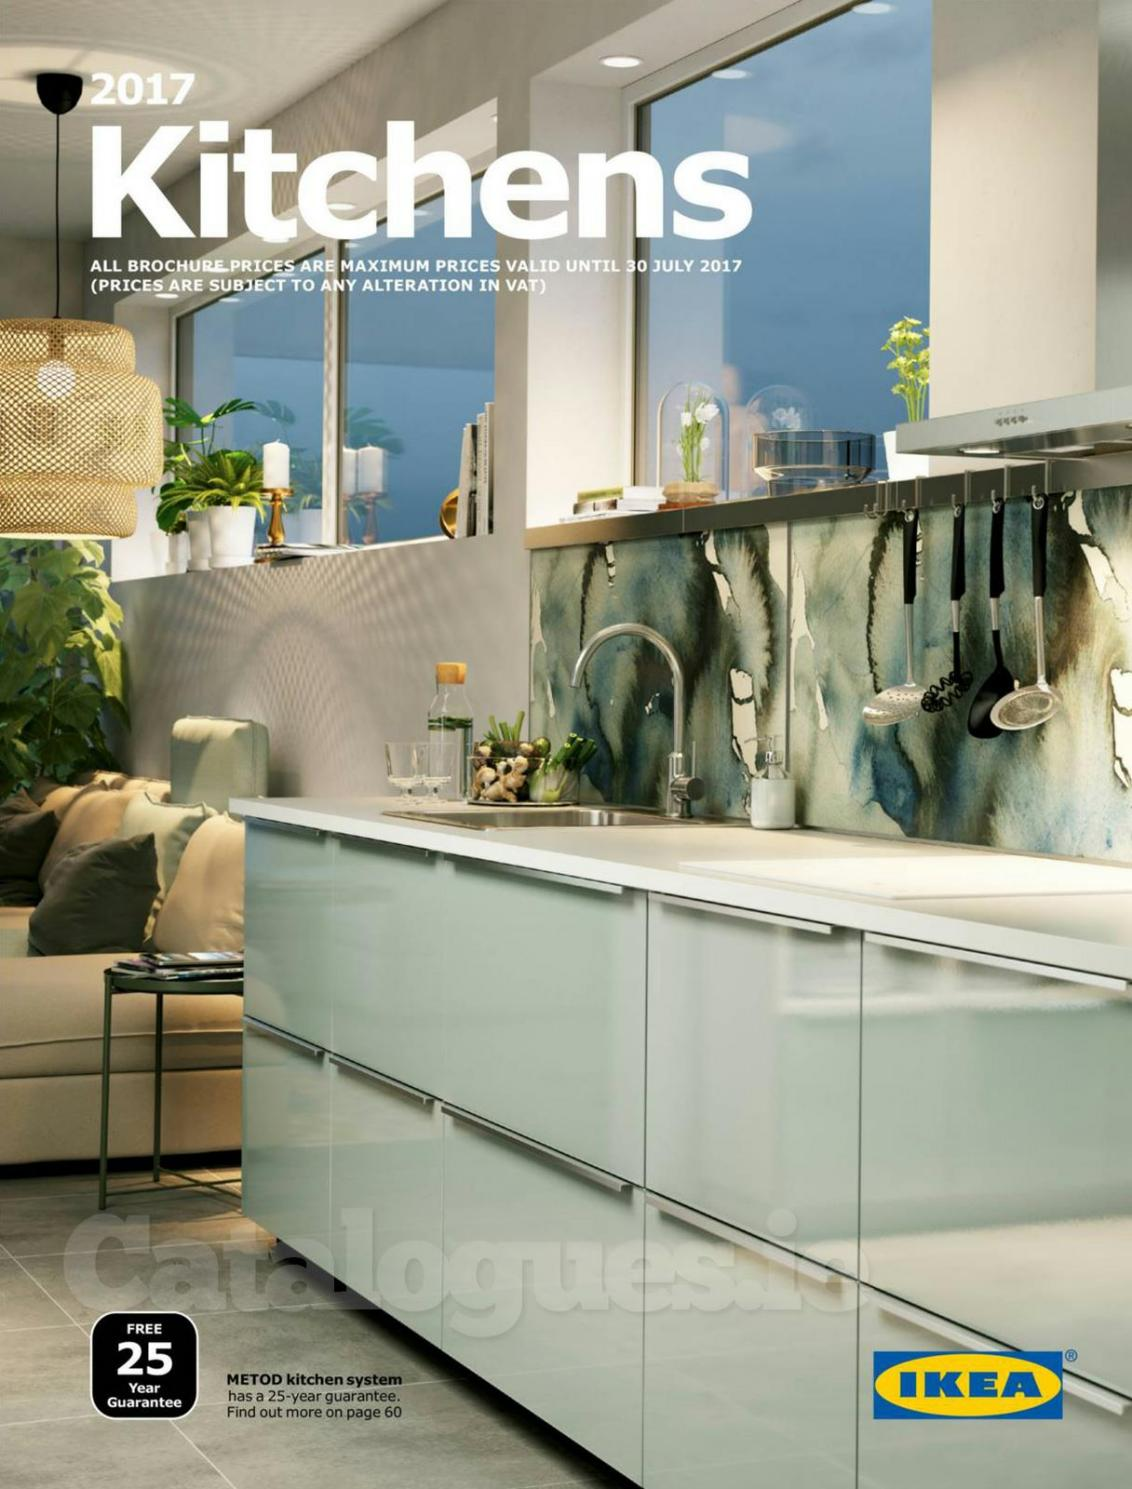 Ikea Kitchens 2017 Ikea Kitchen 2017